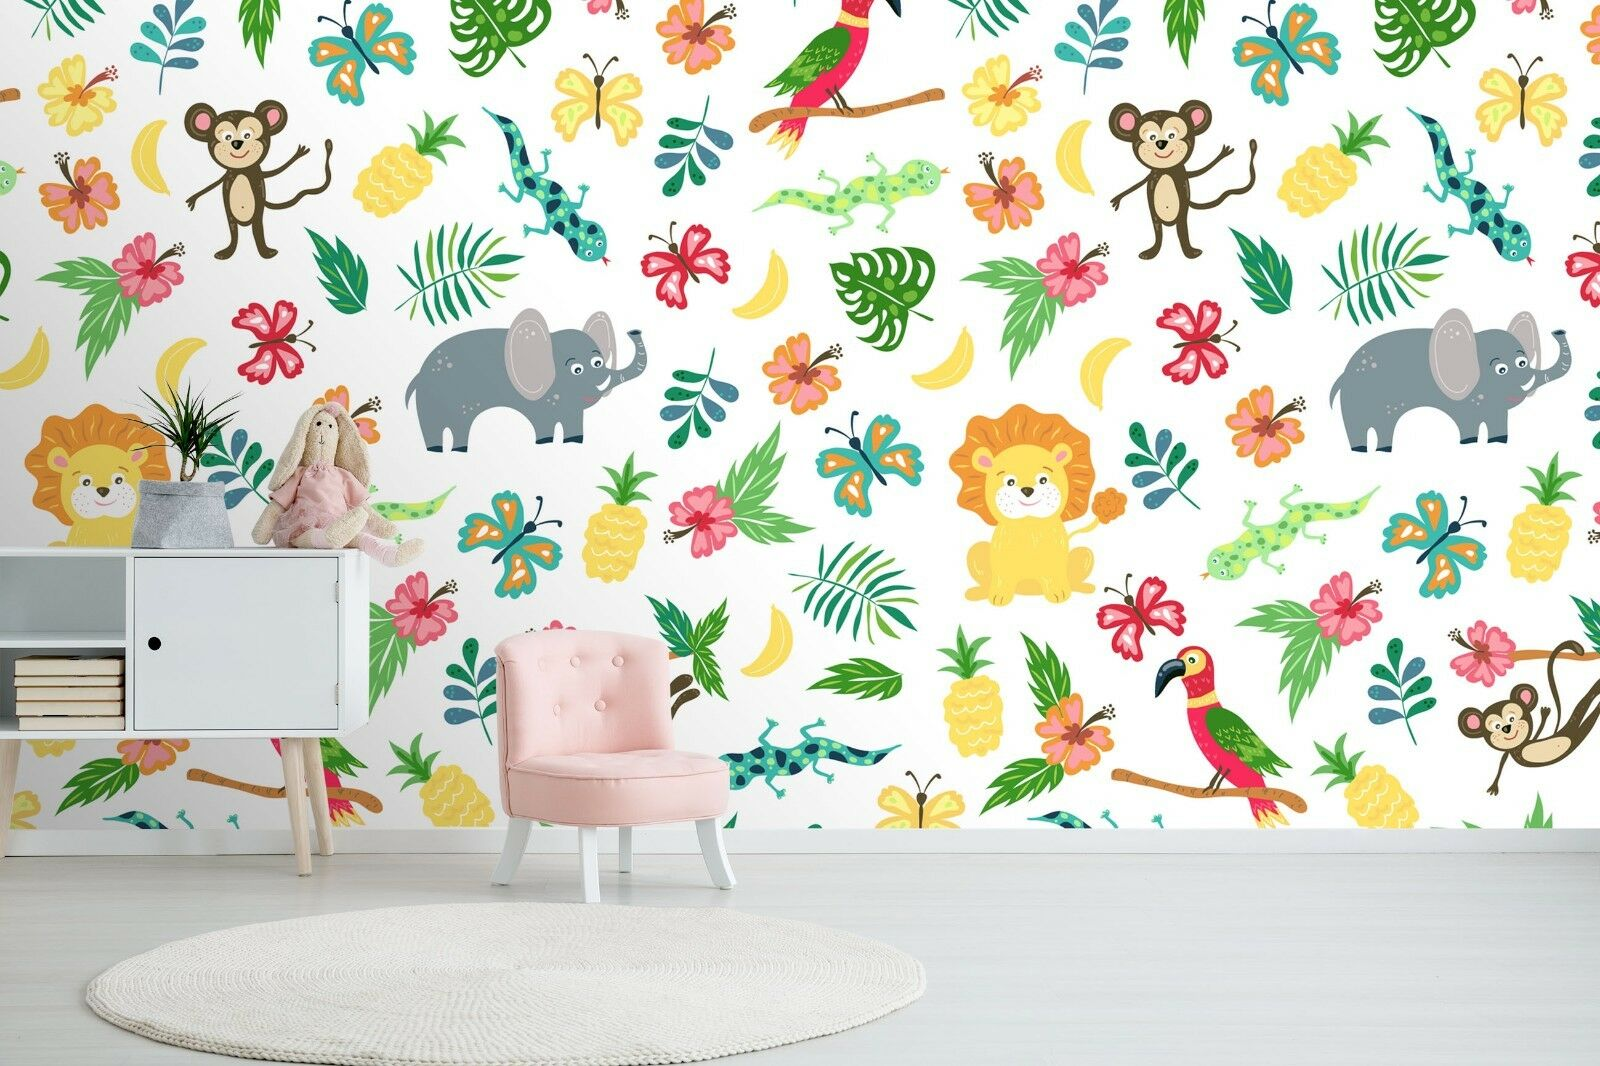 3D Plant Animal 7048 Wall Paper Print Wall Decal Deco Indoor Wall Murals US